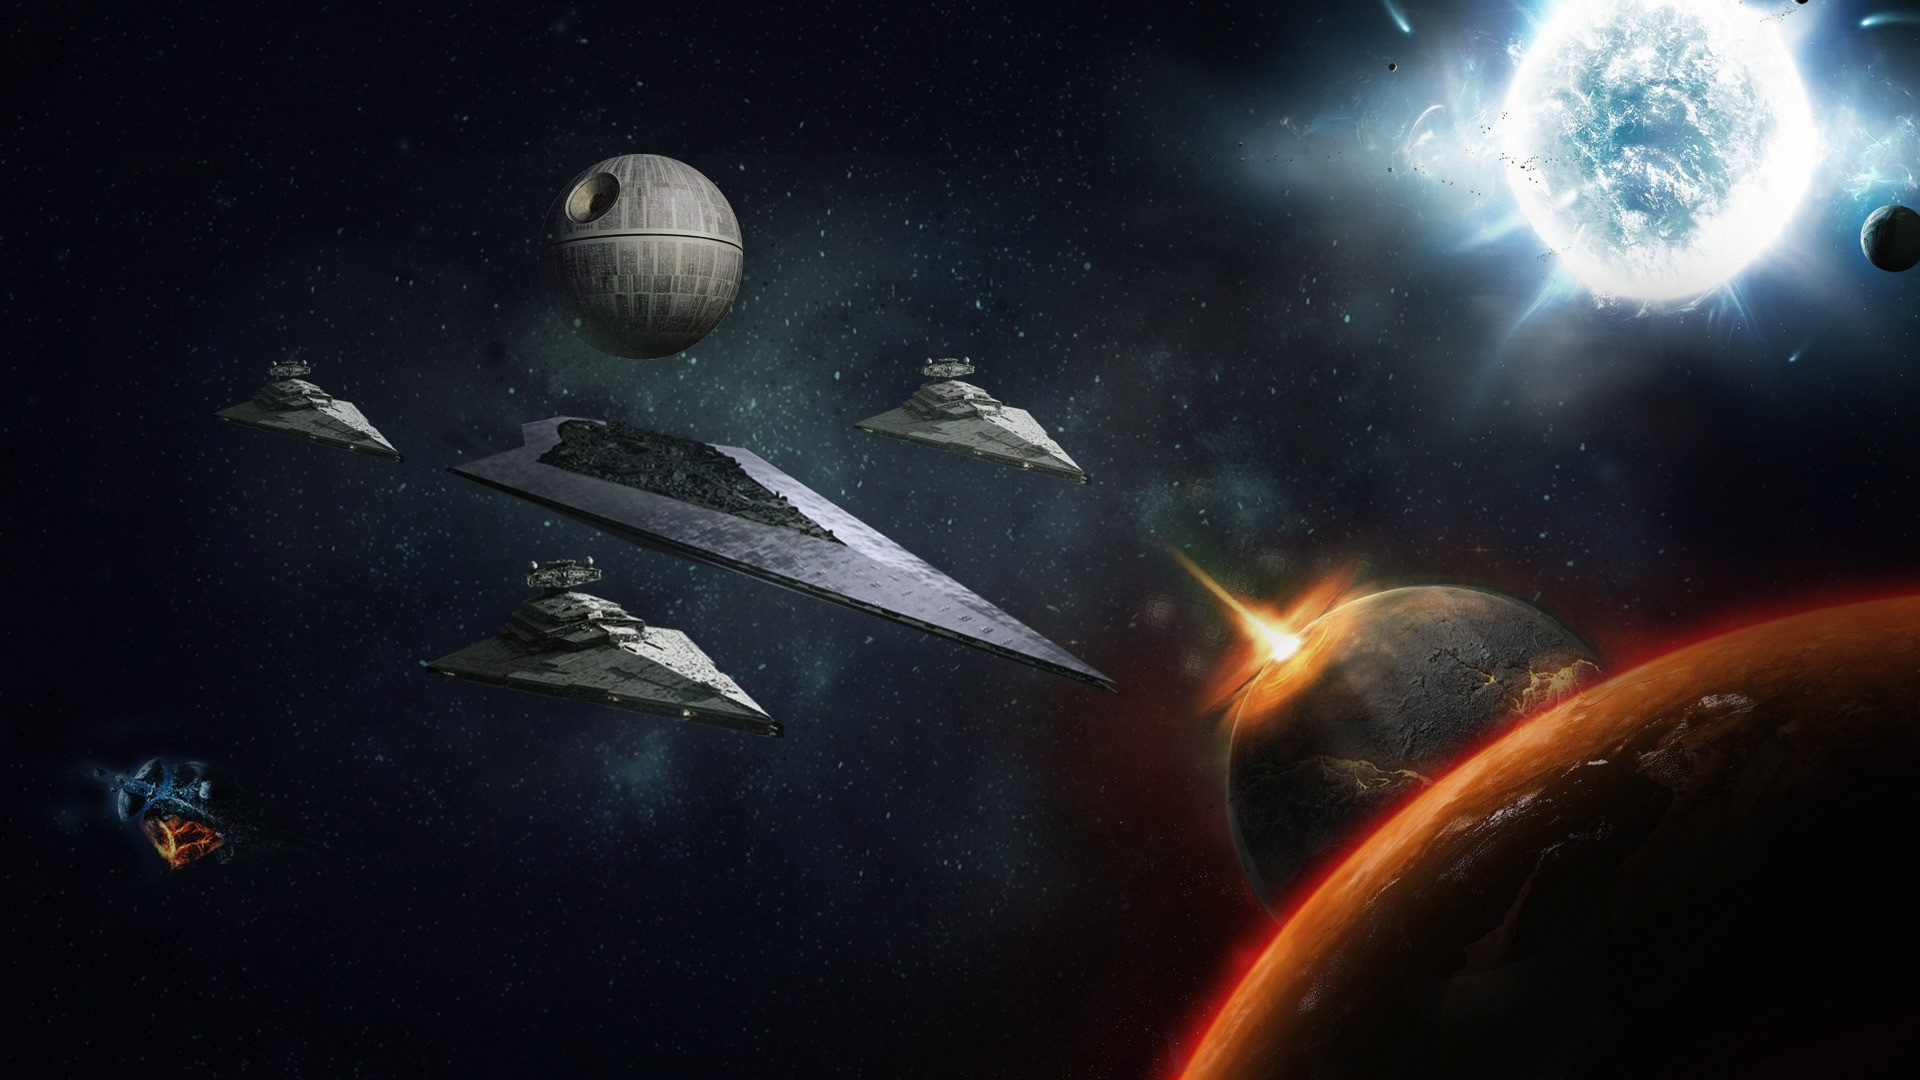 hd star wars wallpaper - photo #2